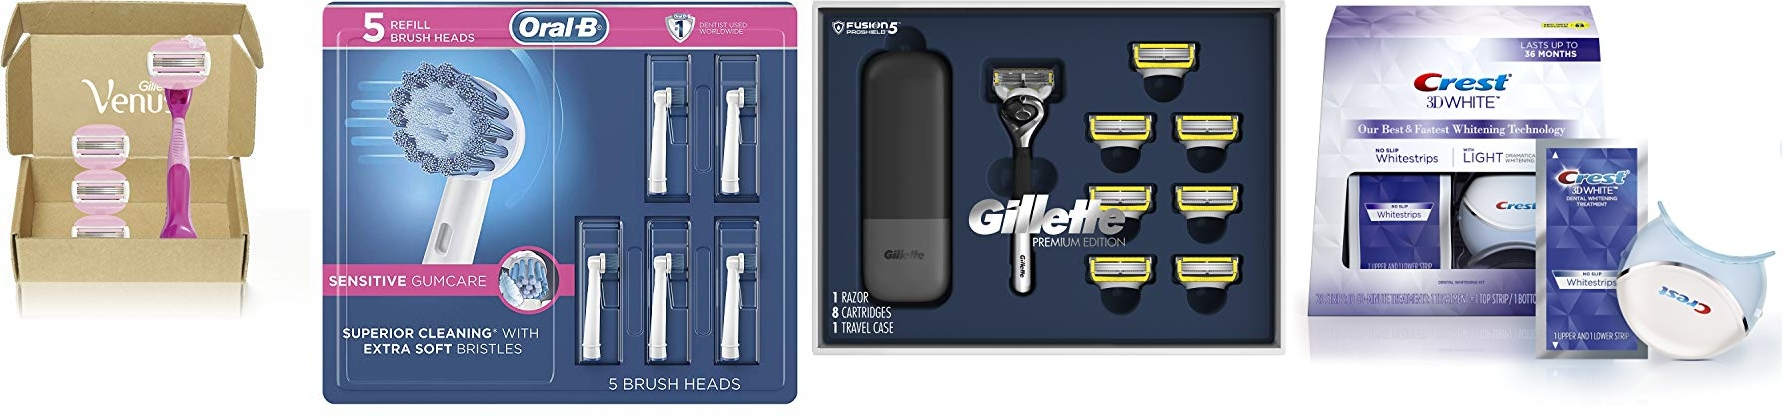 Deal of the Day: Save up to 35% on Oral B, Crest and Gillette!